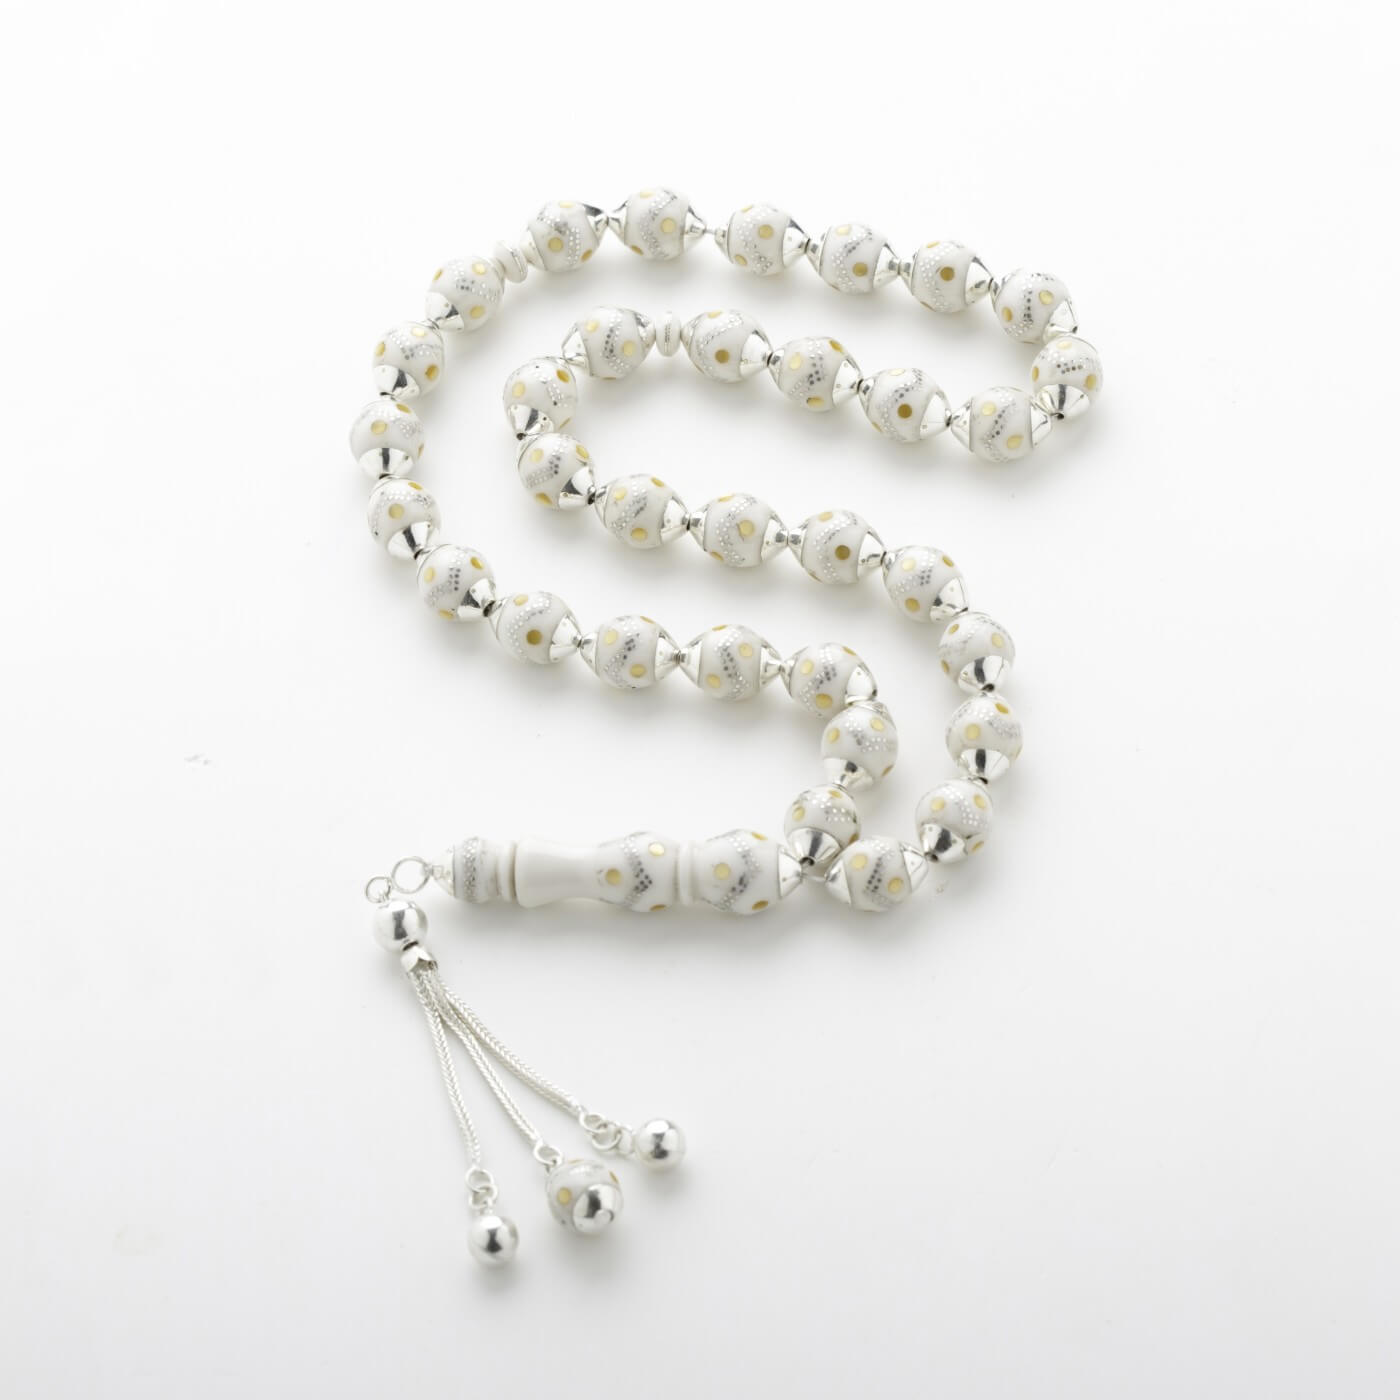 Ivory Prayer Beads with Silver Dots